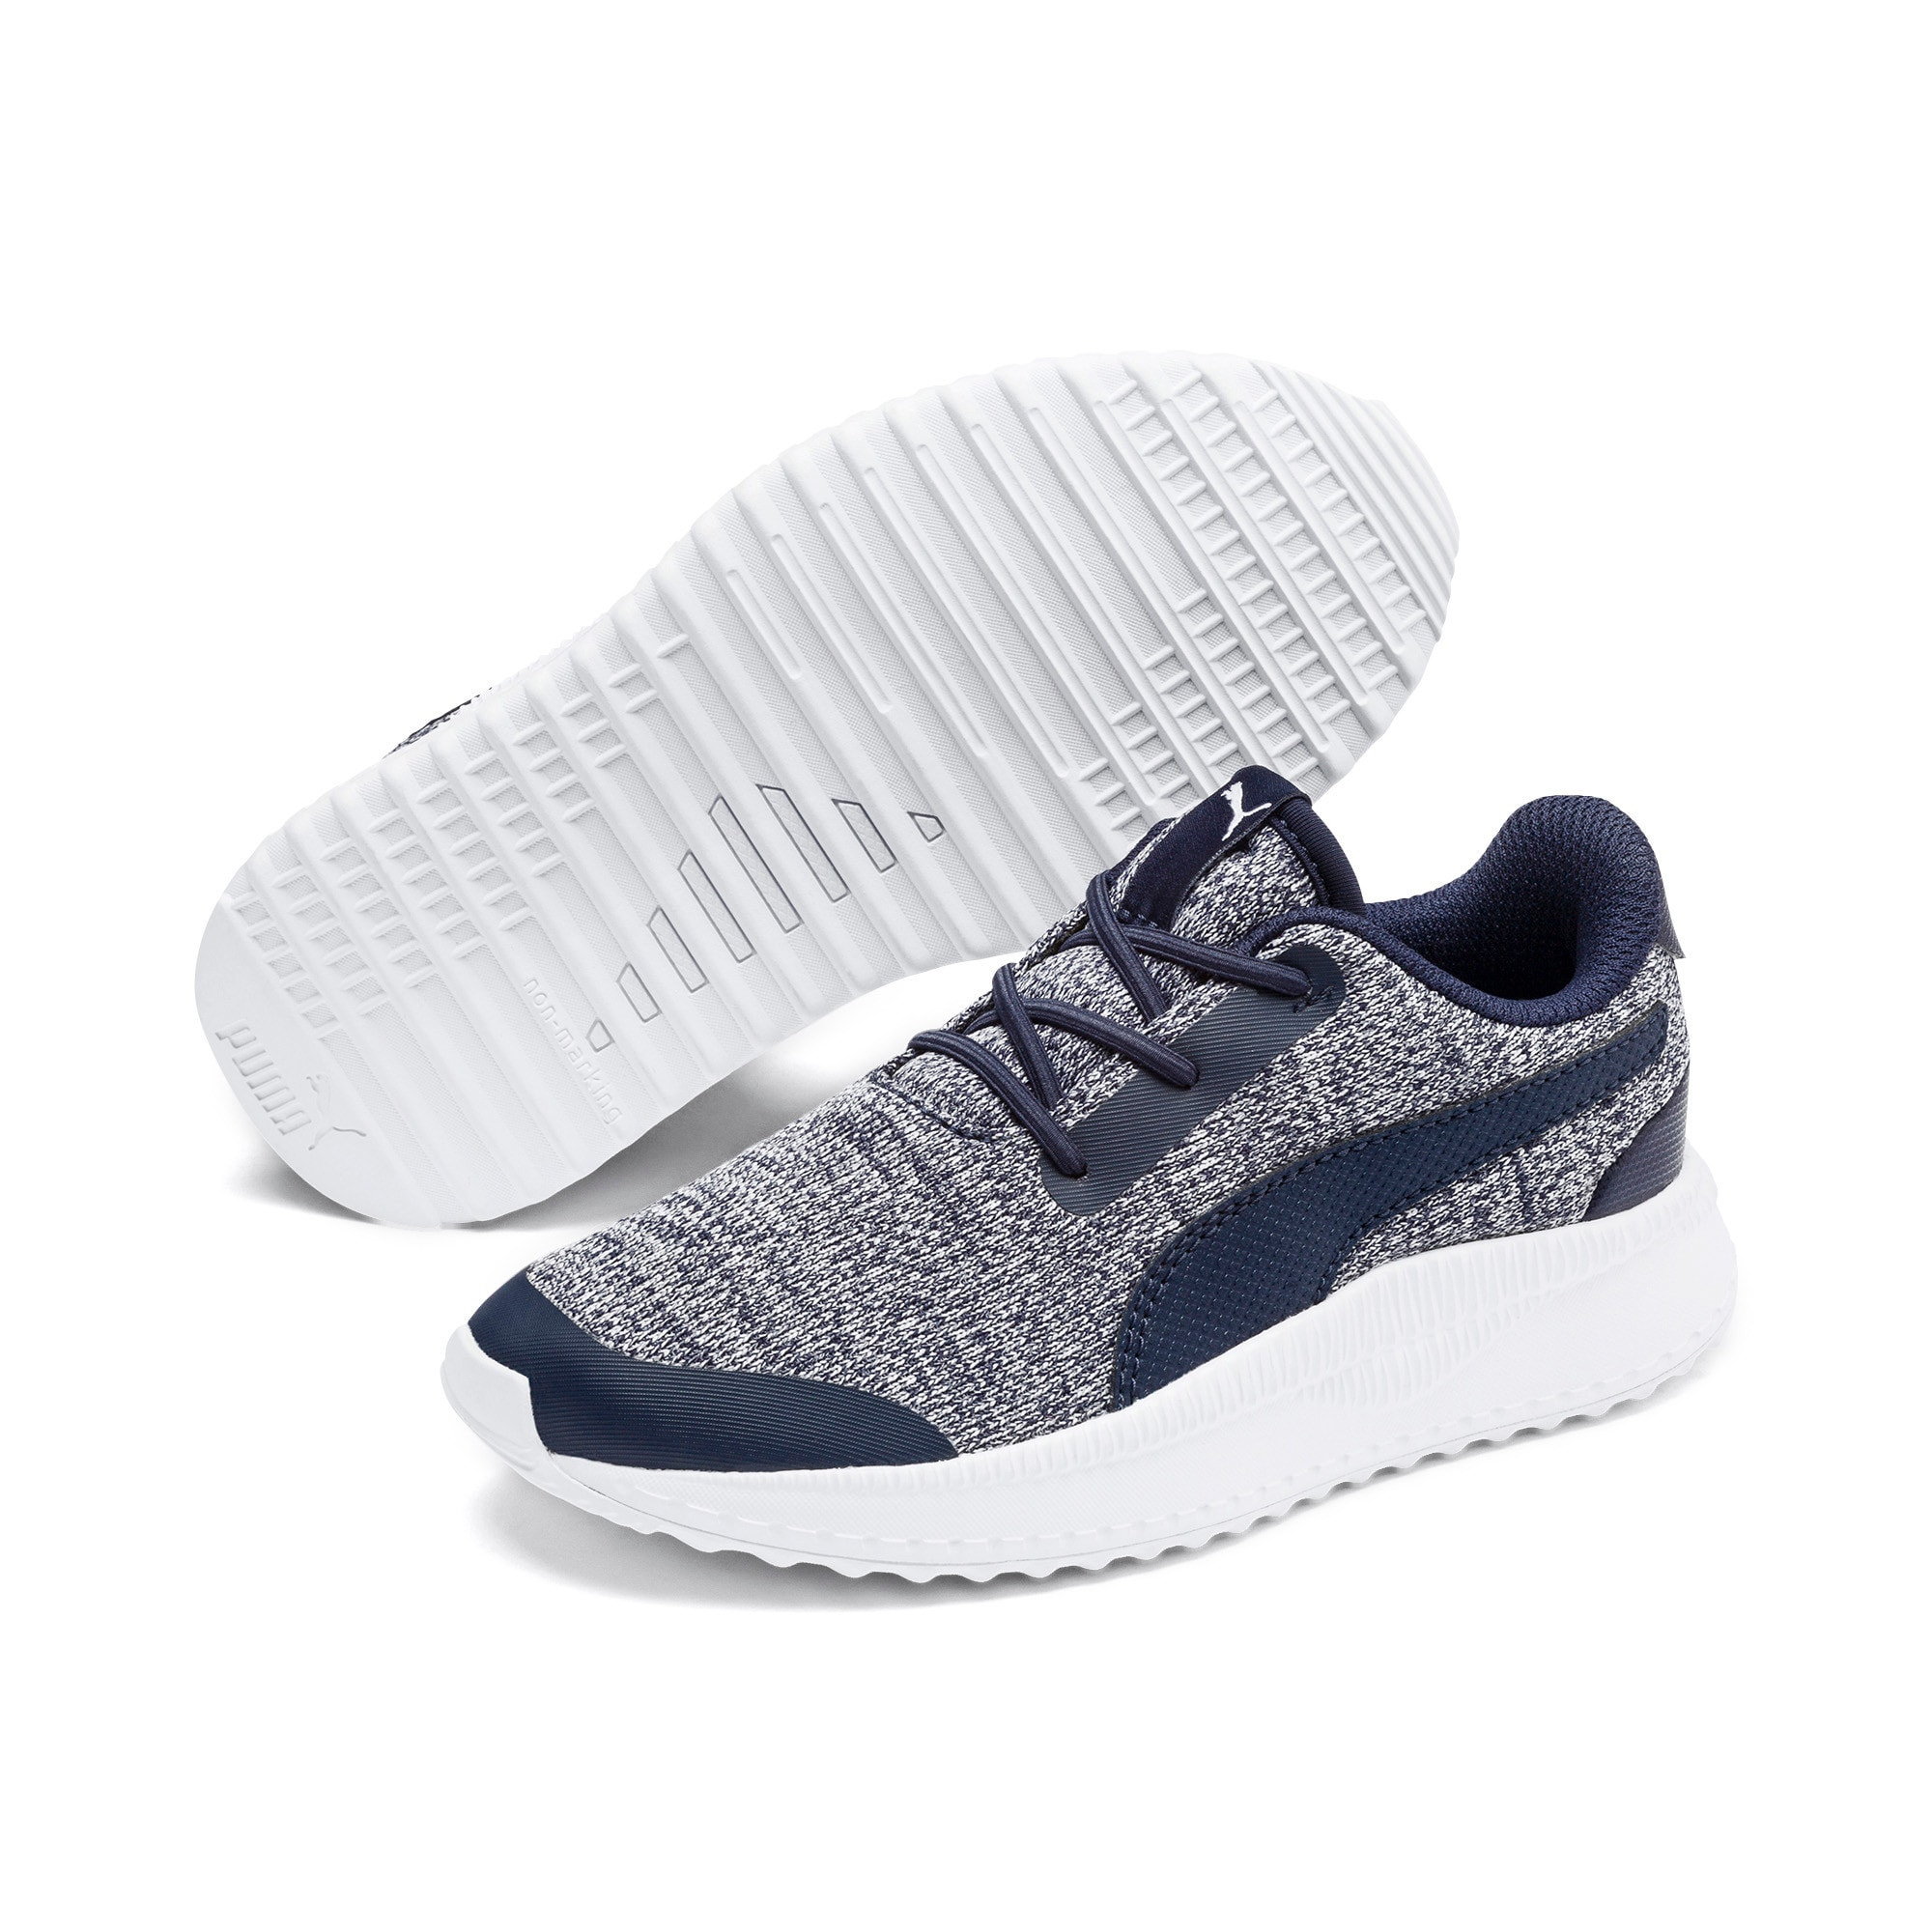 Thumbnail 2 of Pacer Next FS Knit AC Kids' Trainers, Peacoat-Puma White, medium